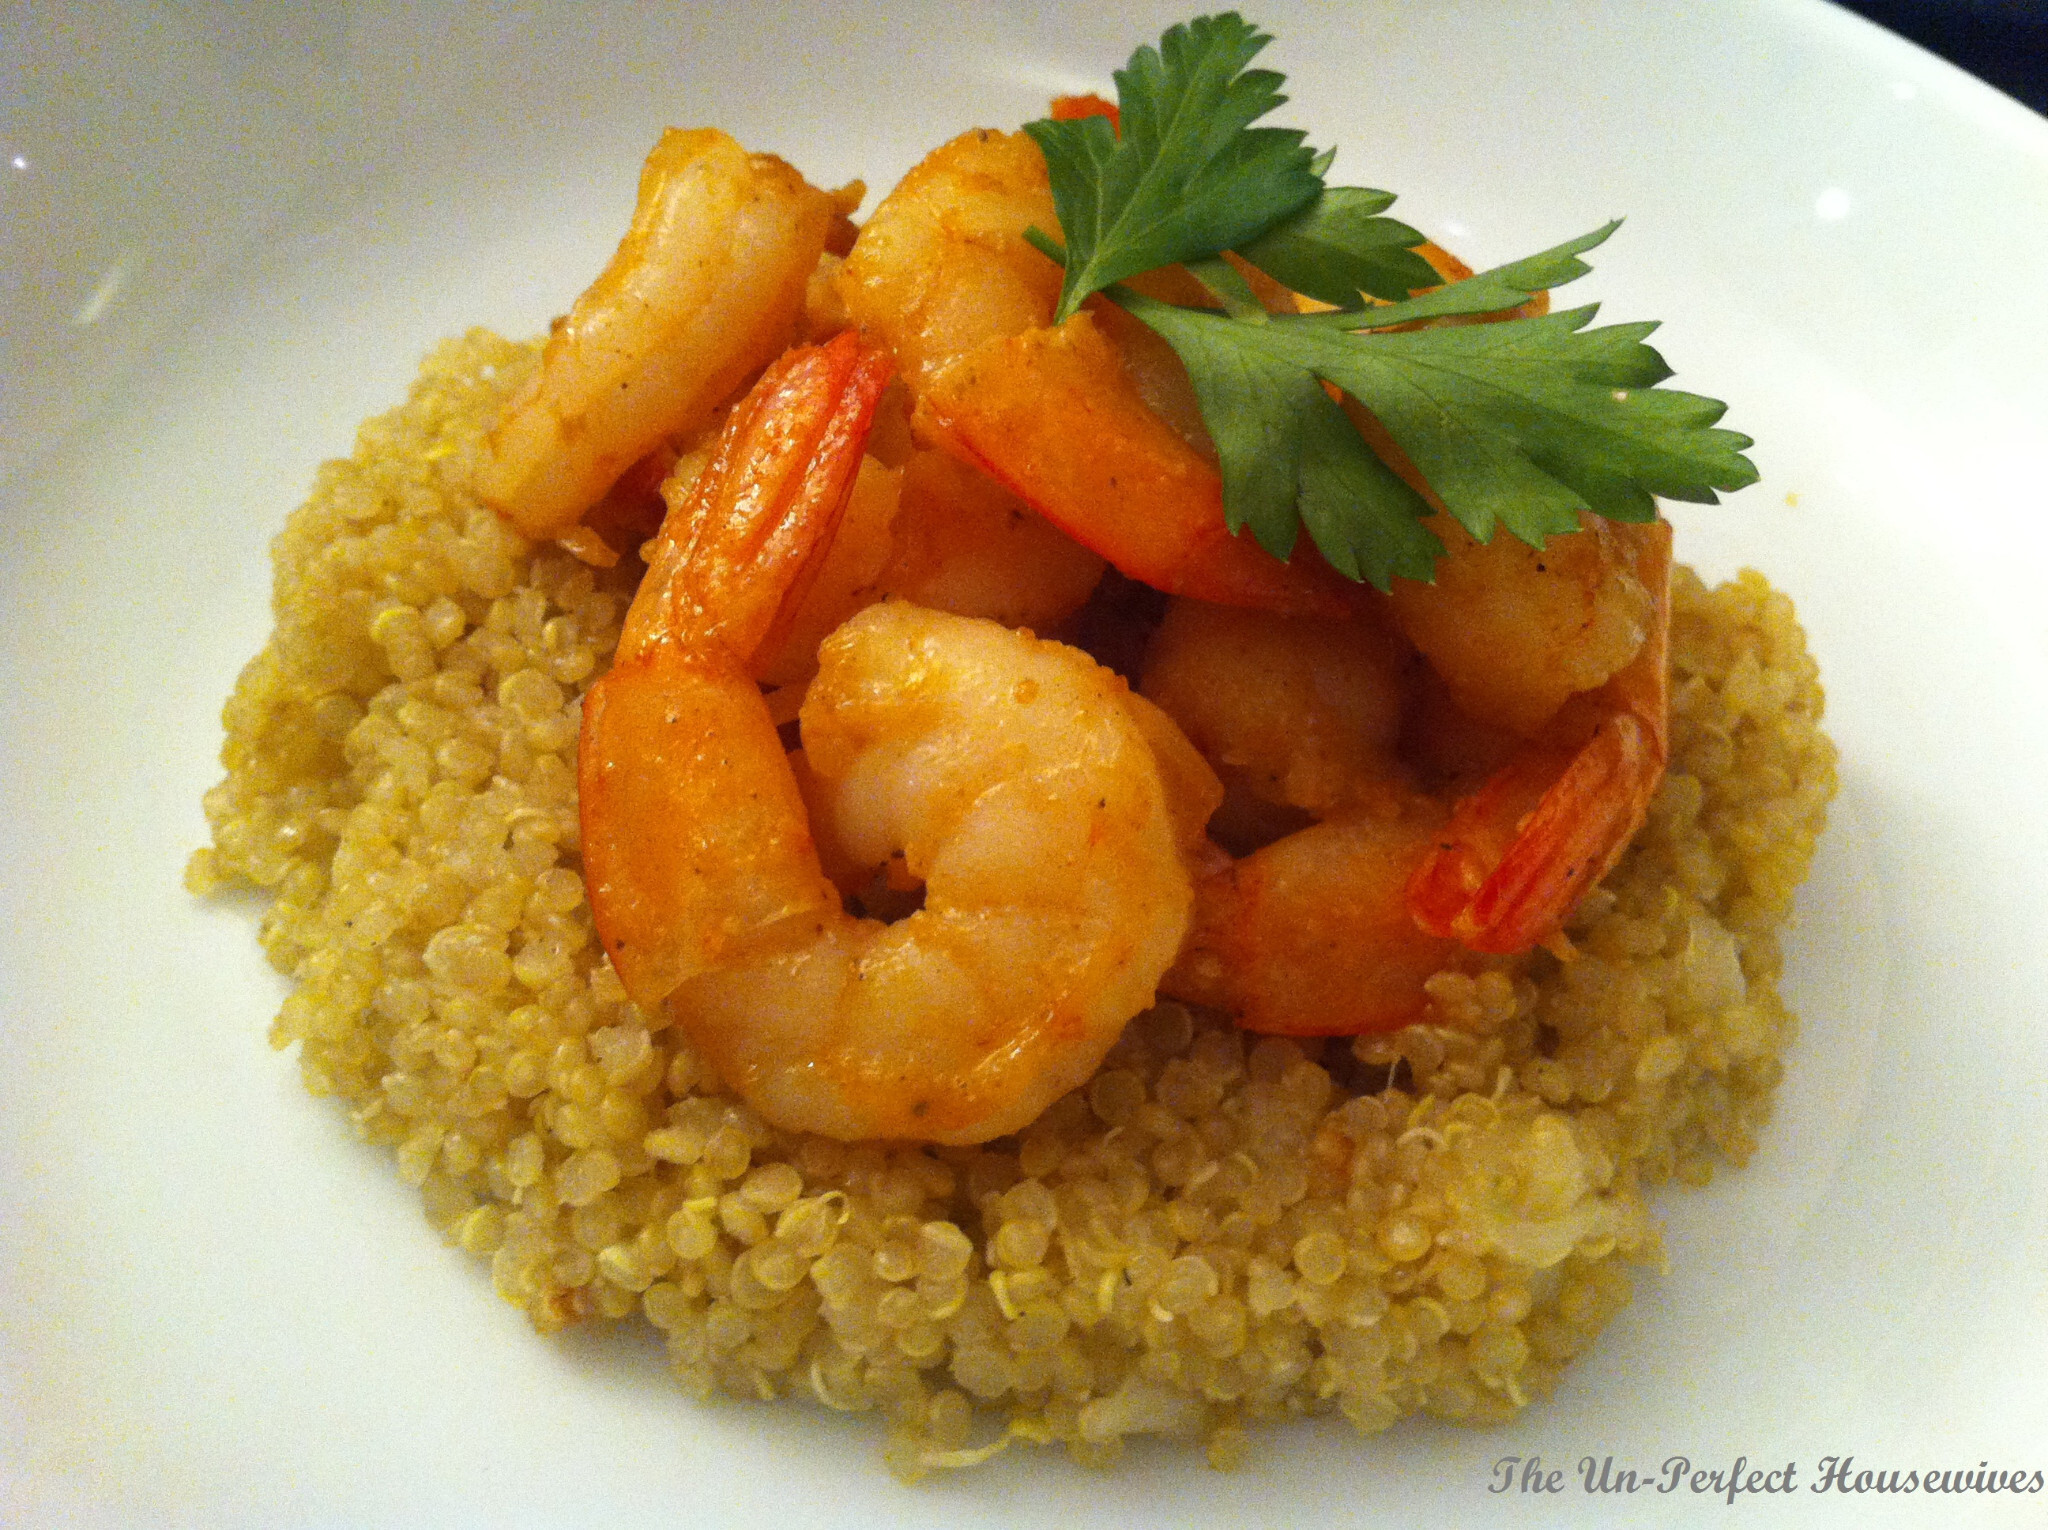 Garlic Shrimp with a side of Quinoa